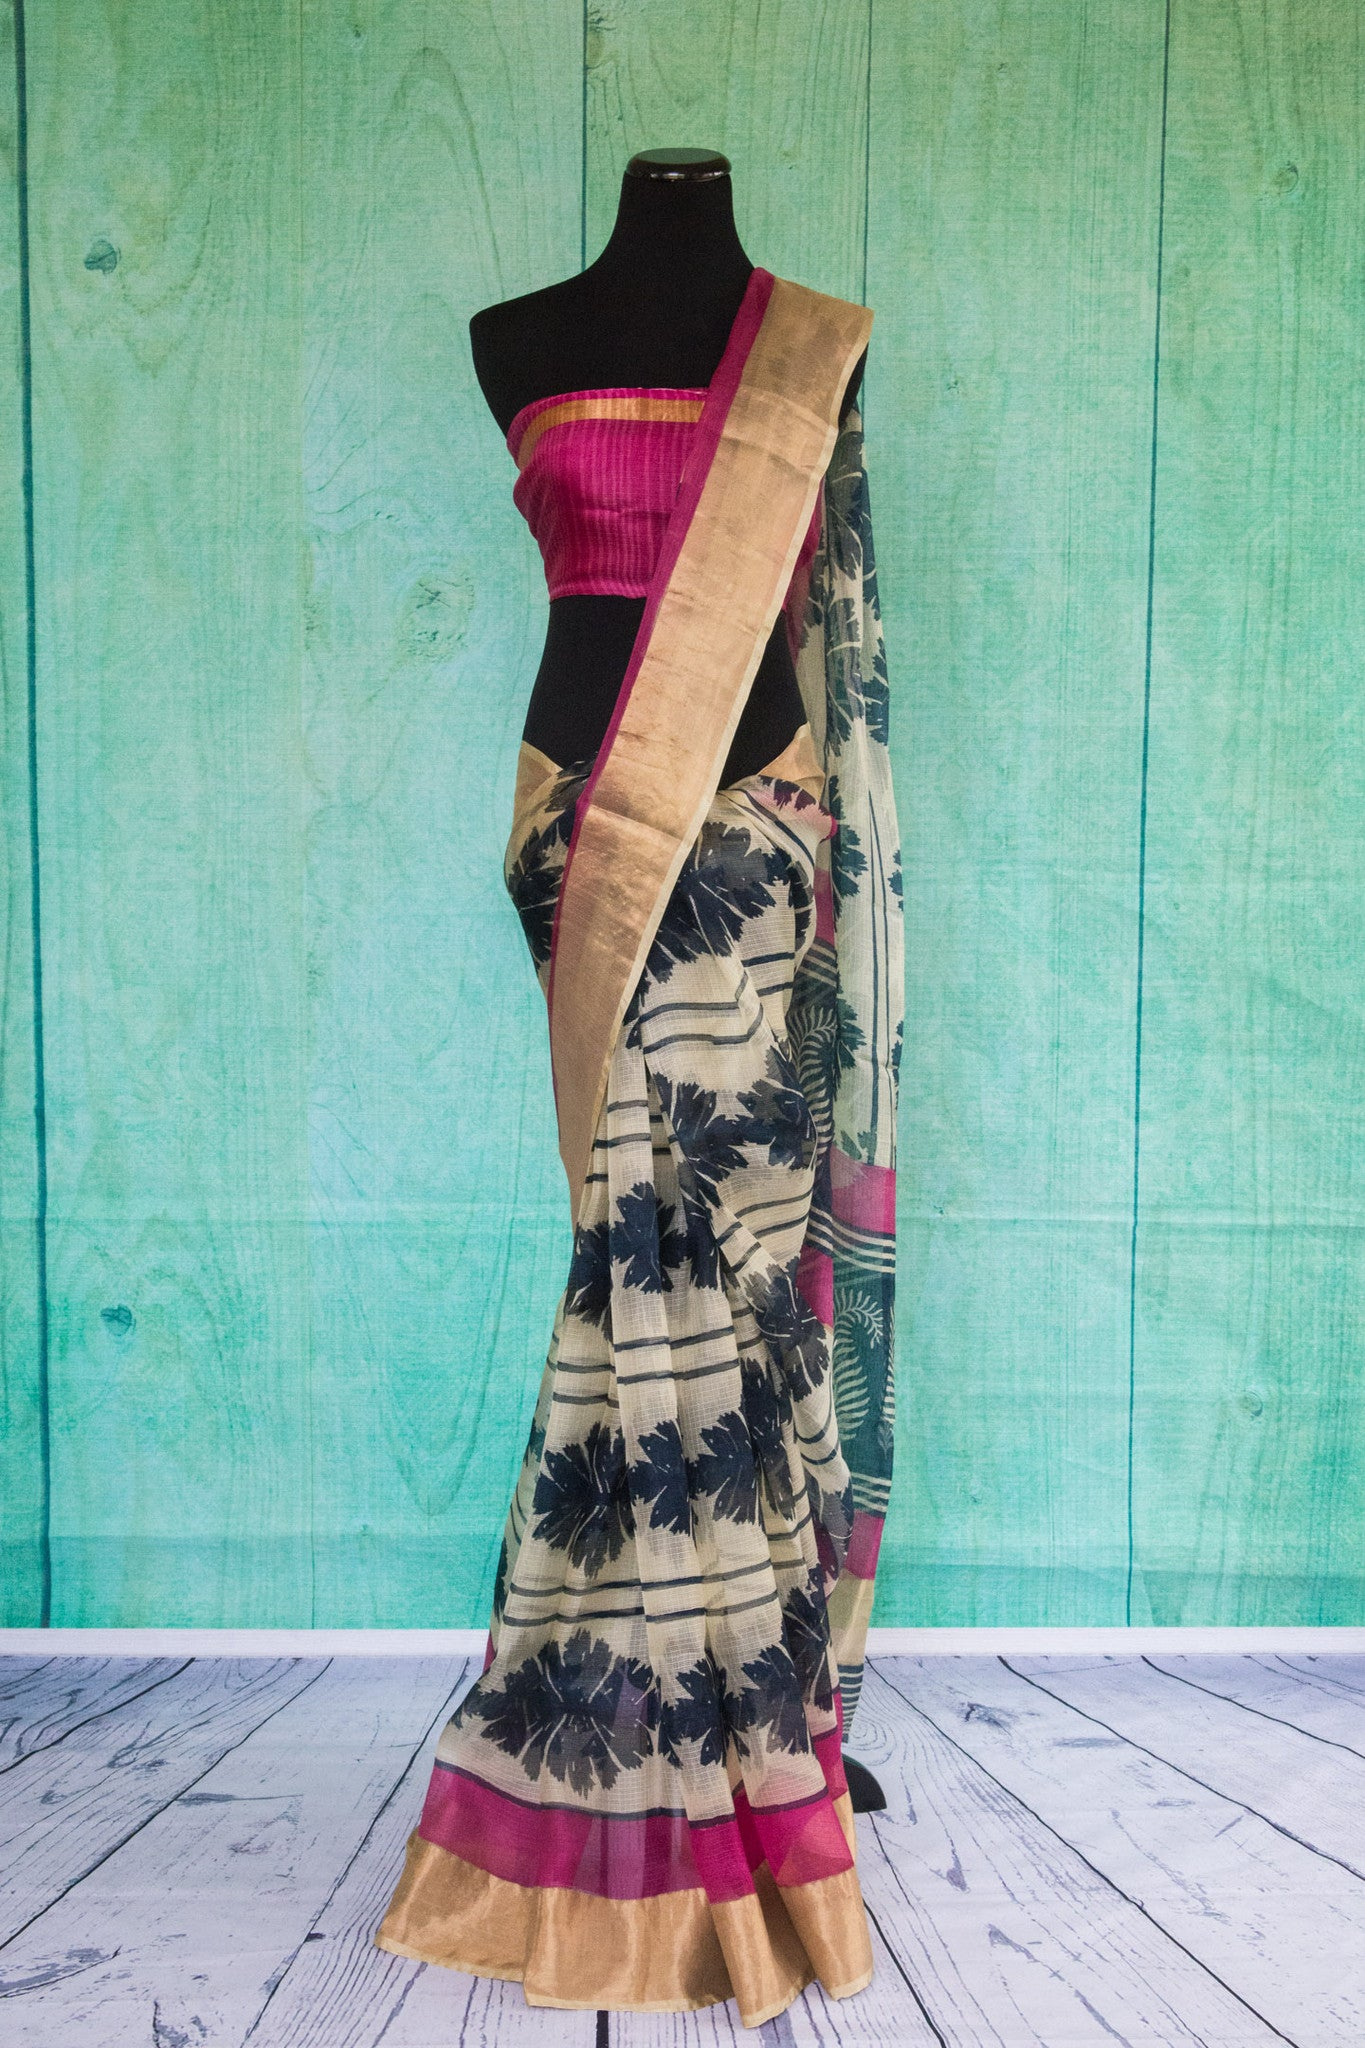 90c081 Printed black, white & pink sari with golden boder. The zari kota saree is ideal for parties, as well as festive Indian occasions. Buy this ethnic saree online at our Indian clothing store in USA.